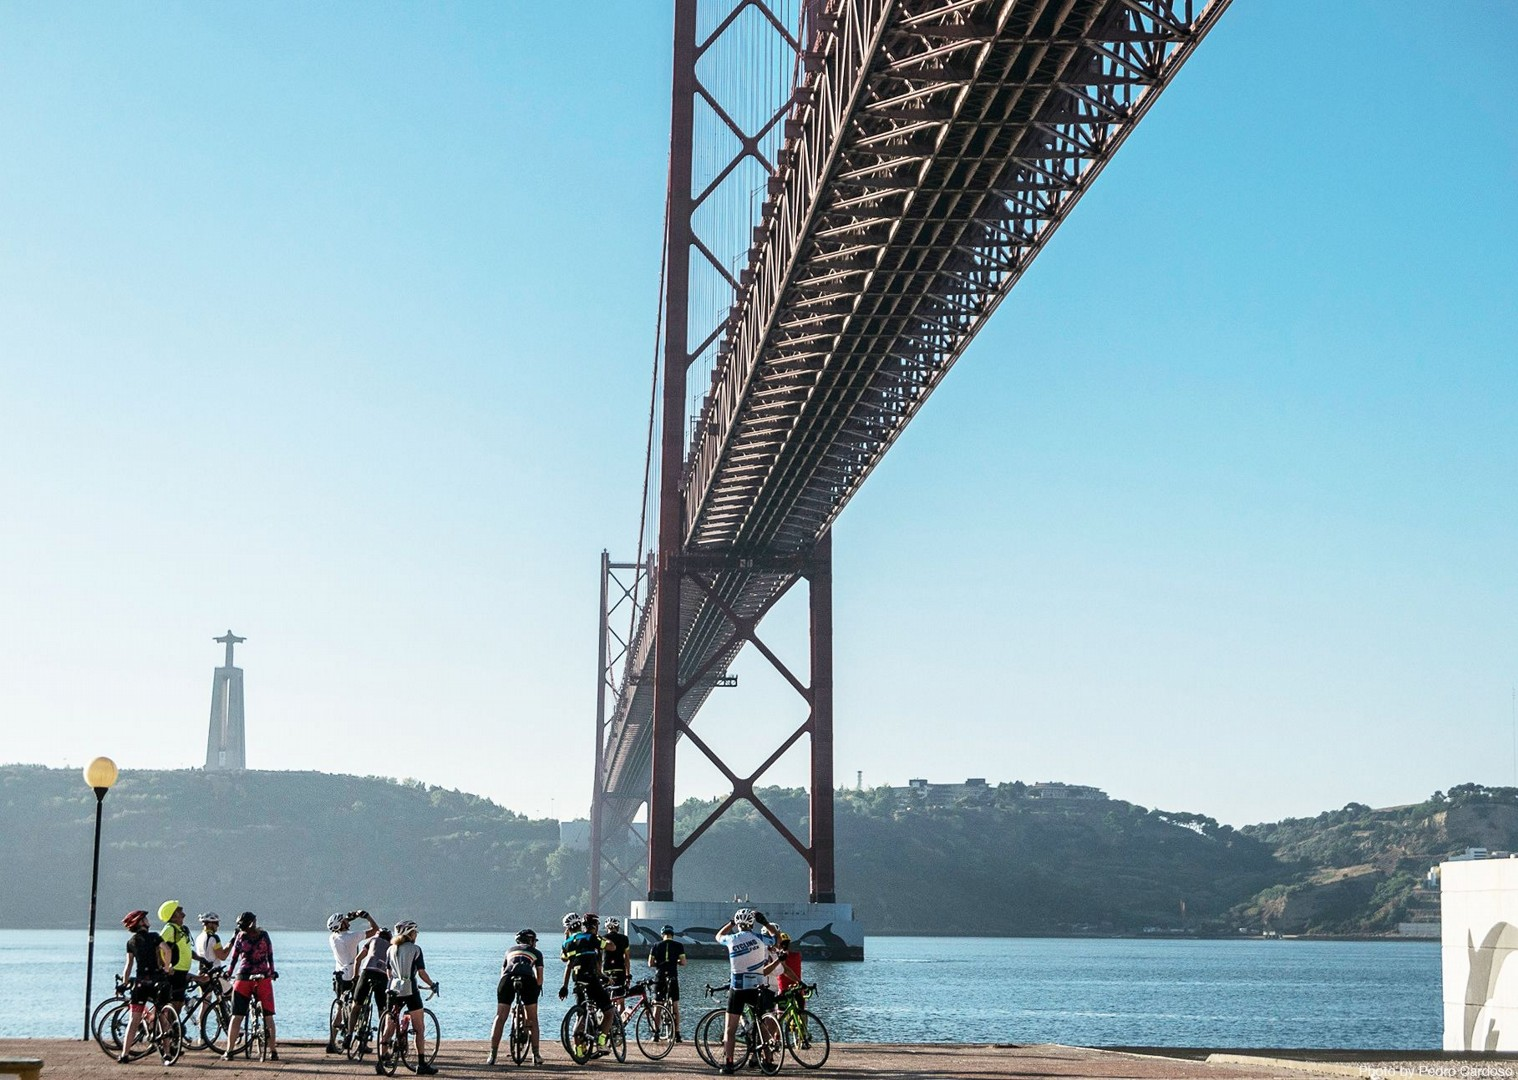 atlantic-escape-portugal-guided-cycling.jpg - Portugal - Atlantic Escape - Guided Road Cycling Holiday - Road Cycling